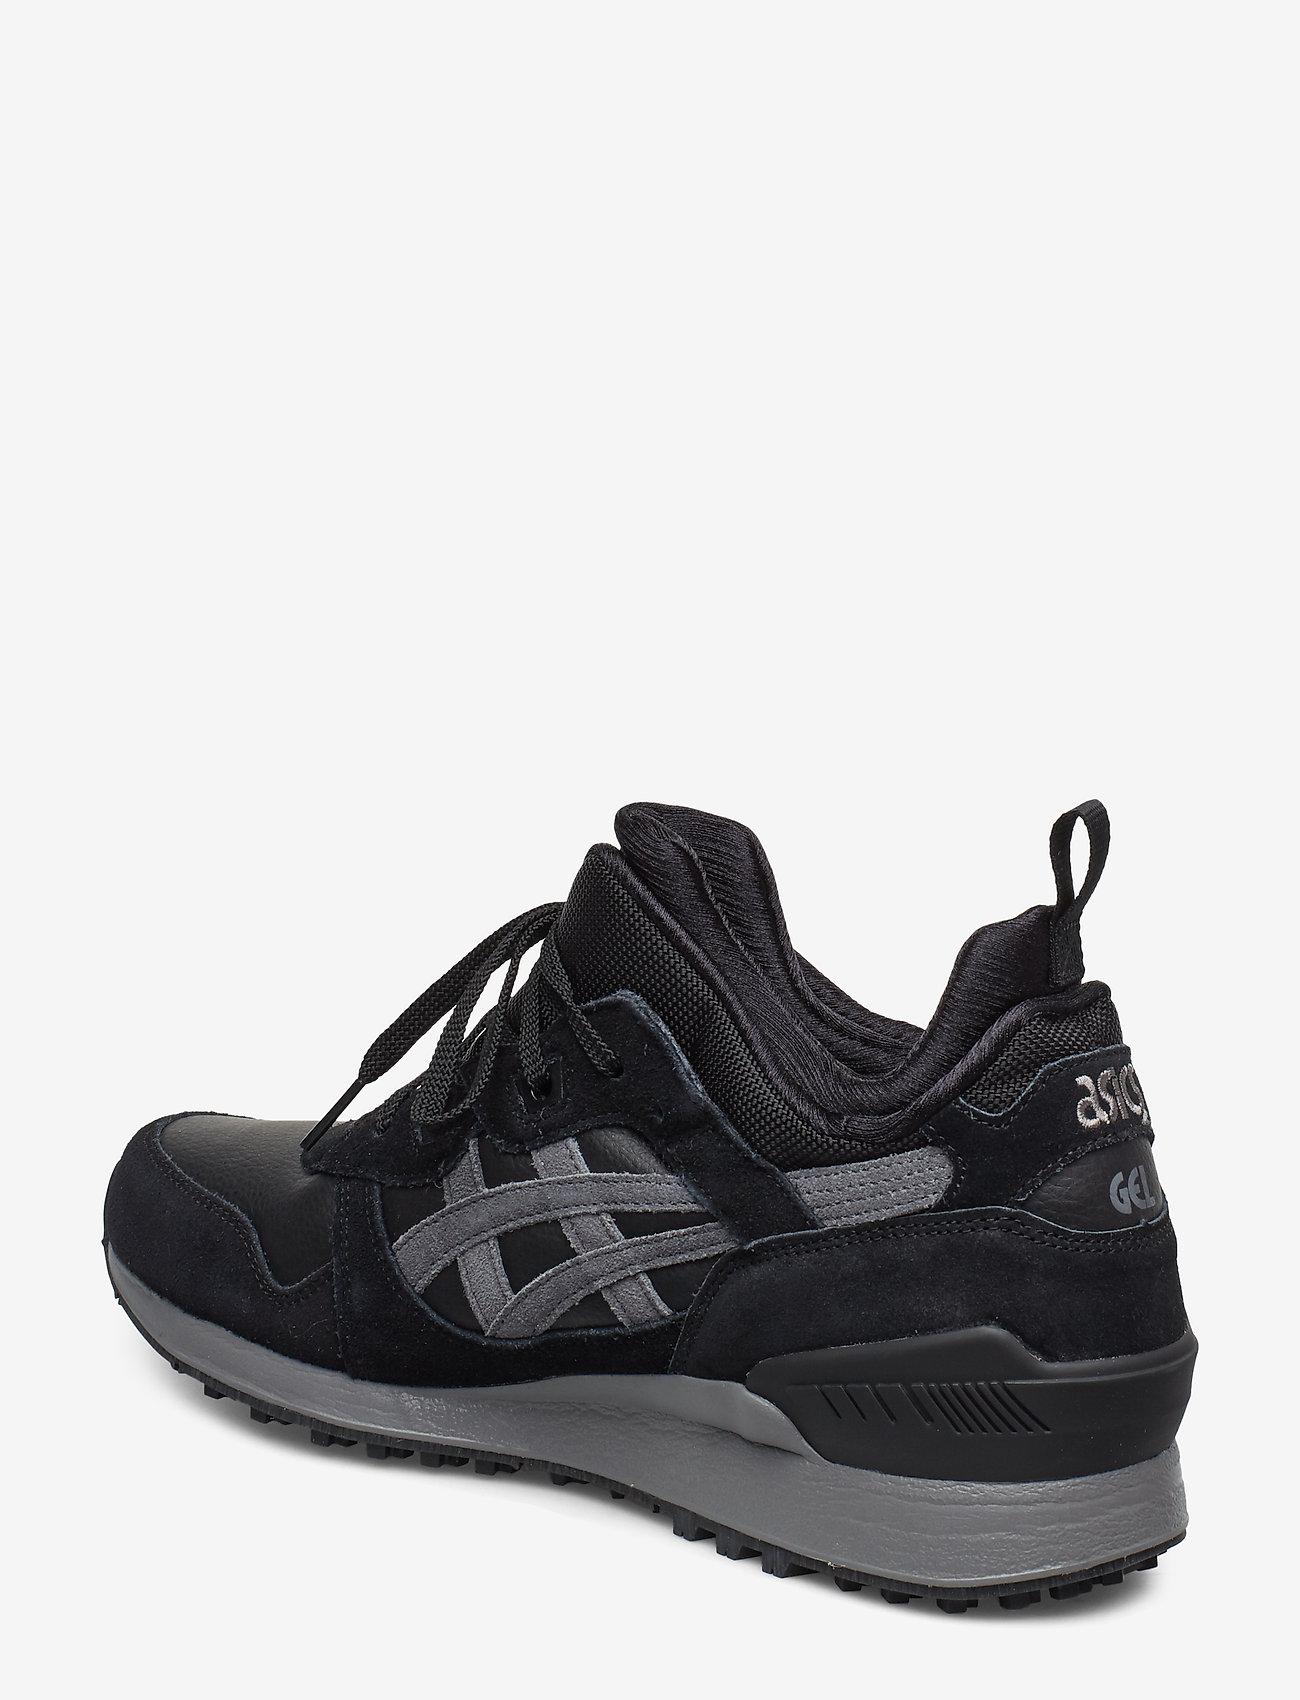 Gel-lyte Mt (Black/dark Grey) - ASICS SportStyle